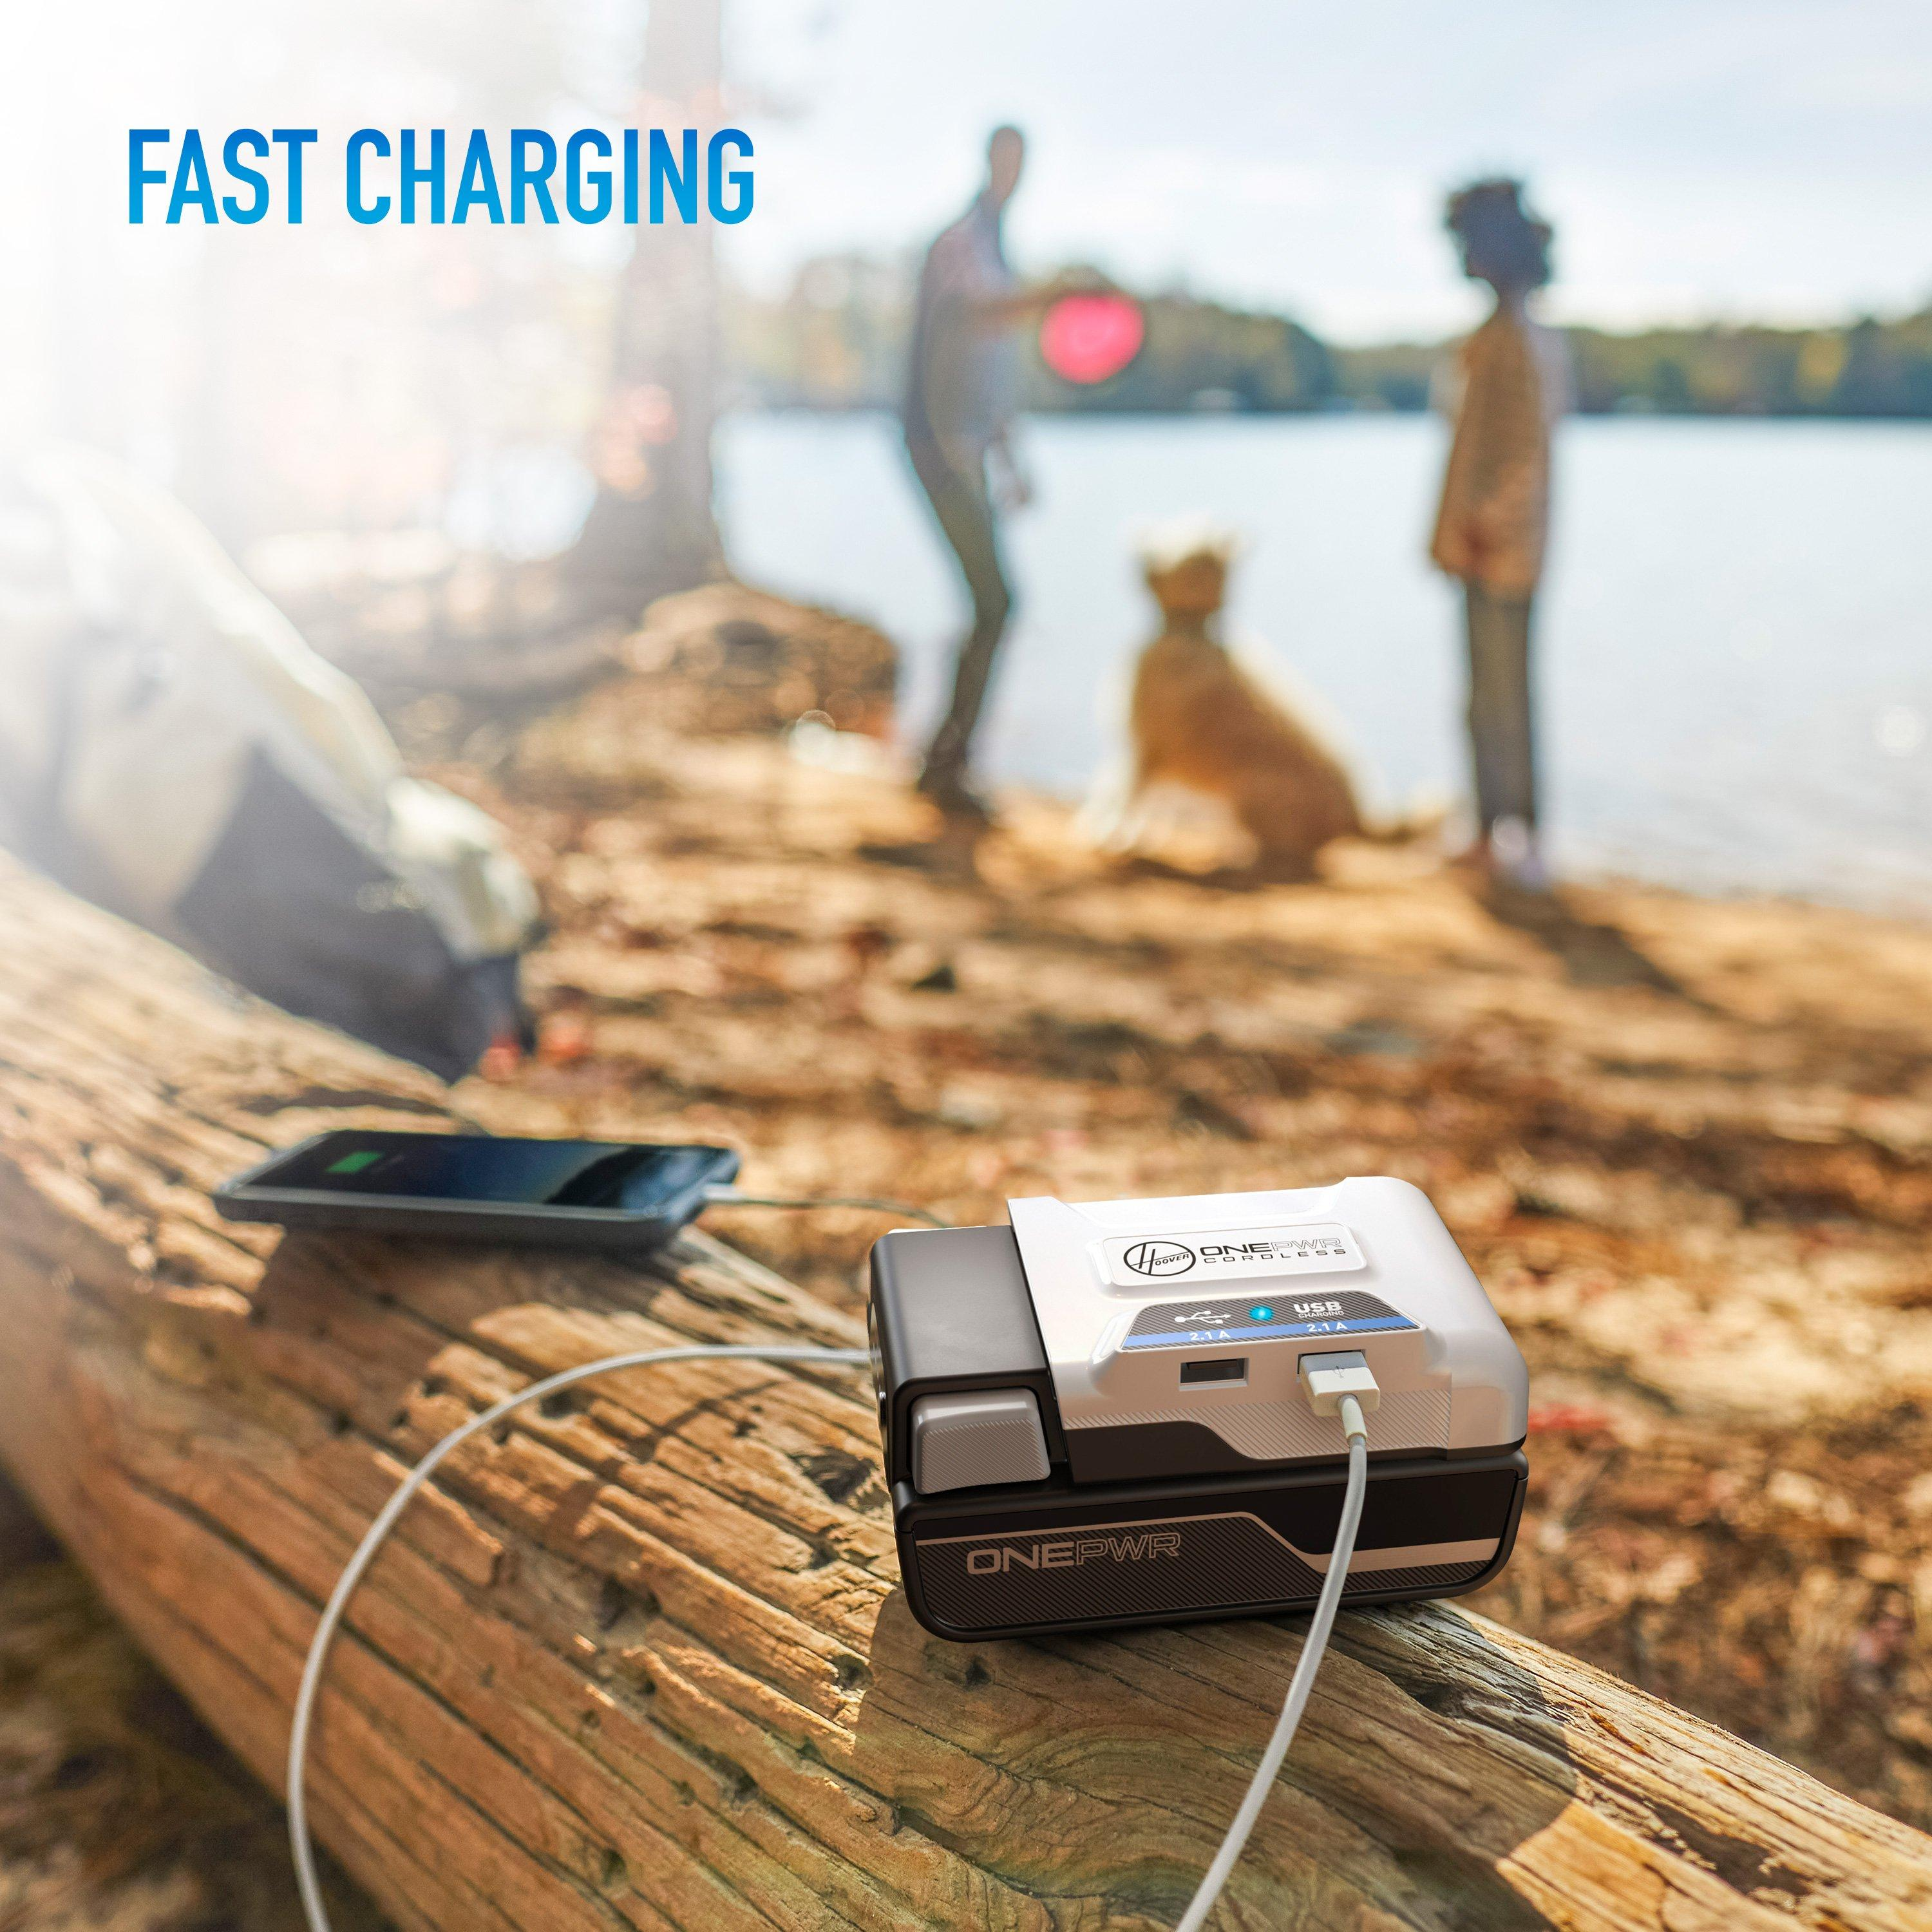 ONEPWR Cordless Dual USB Charger4